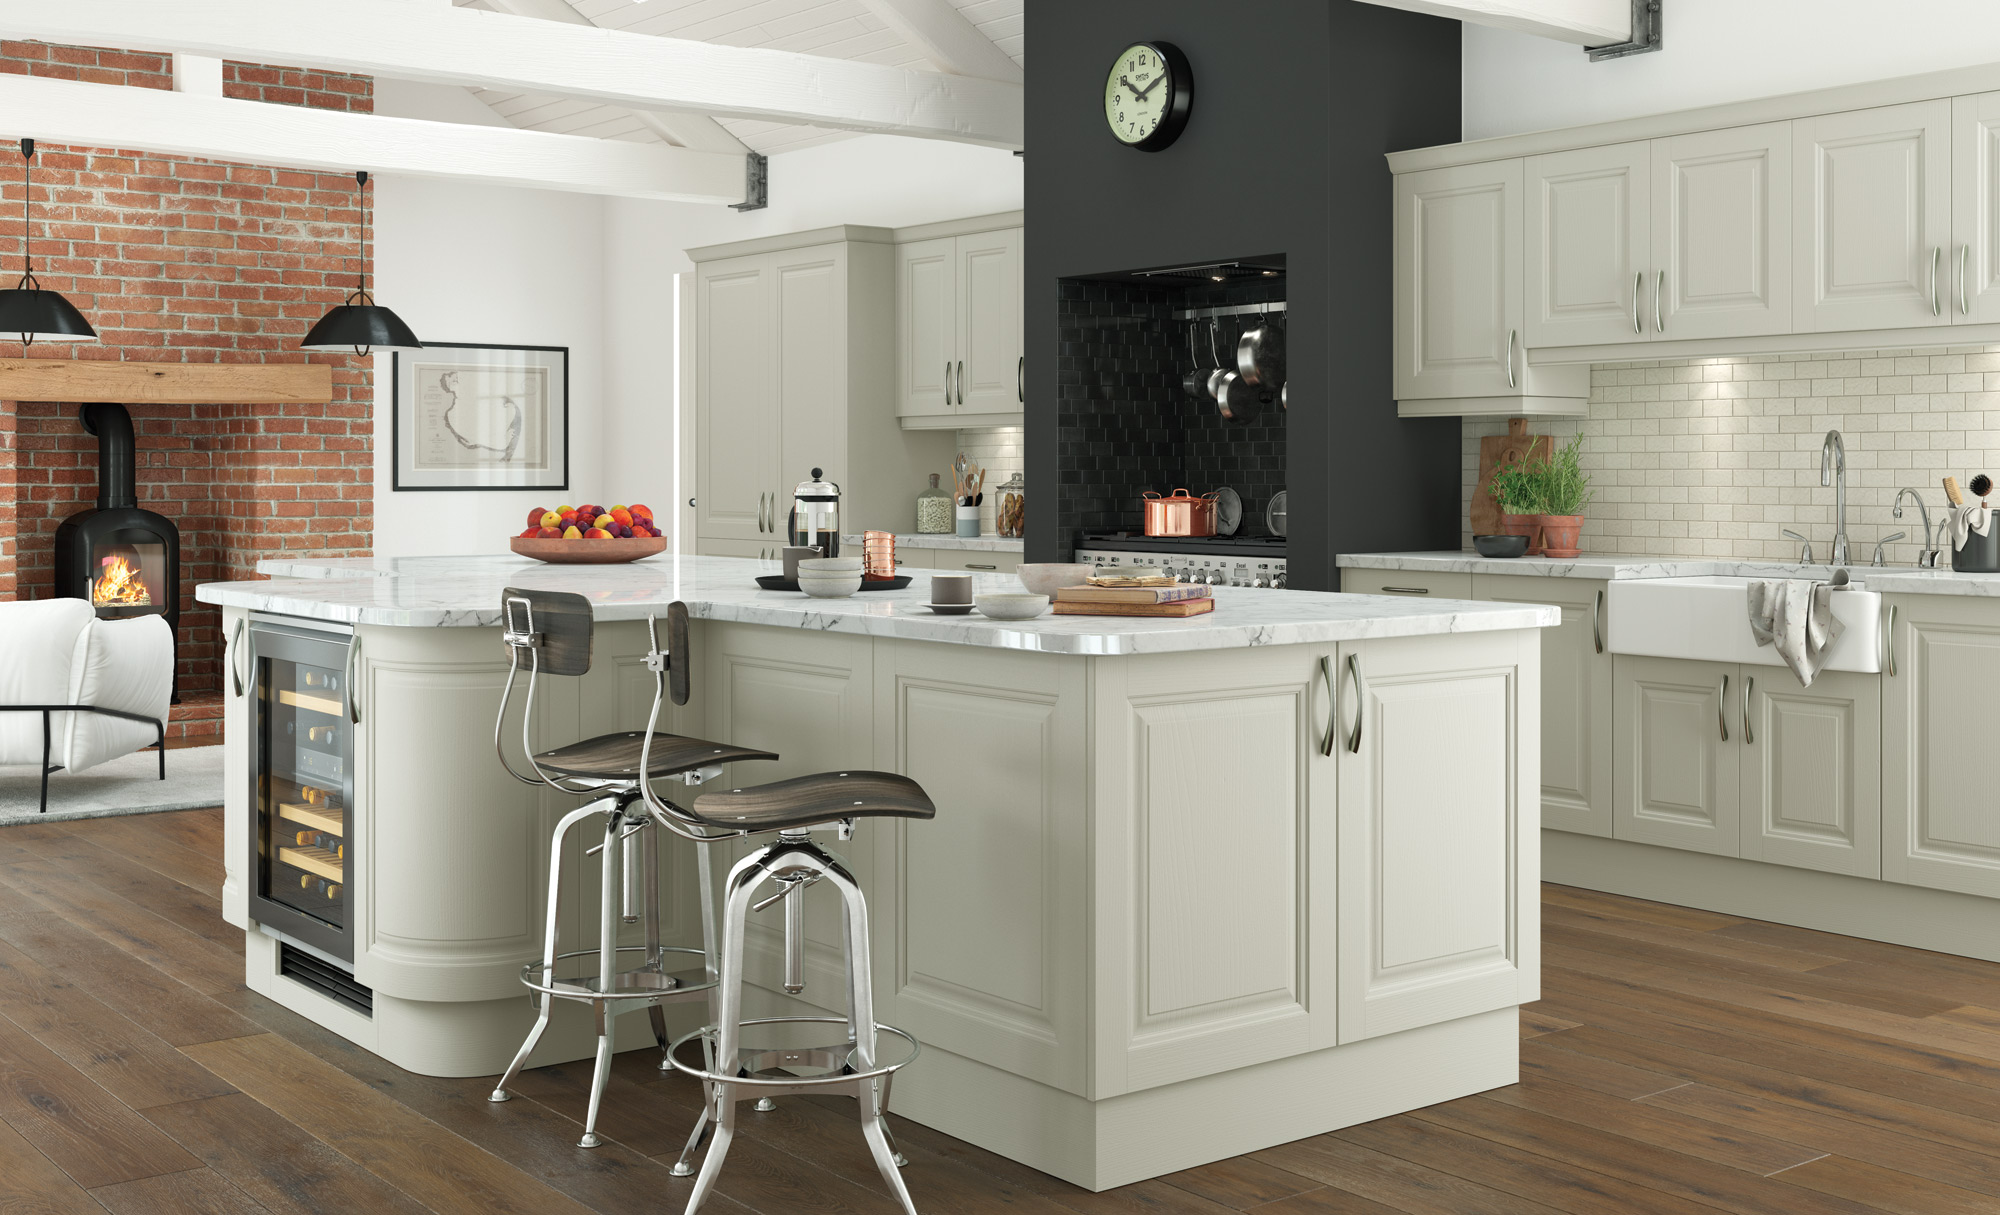 kitchen design in oxford kidlington vision design vision design 620